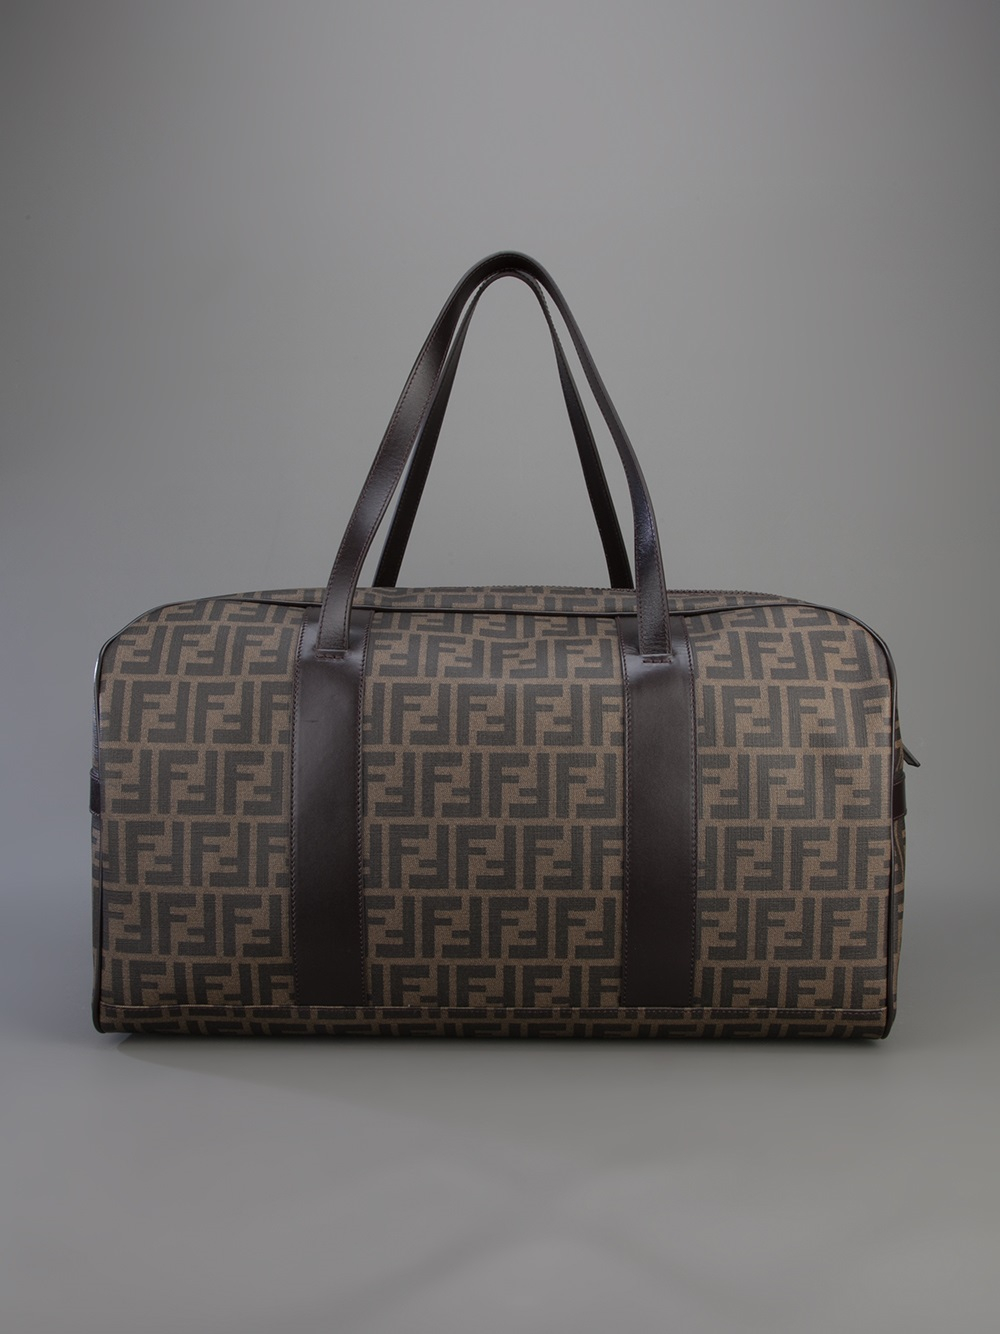 7d6e3d85282 Gallery. Previously sold at: Farfetch · Men's Weekend Bags